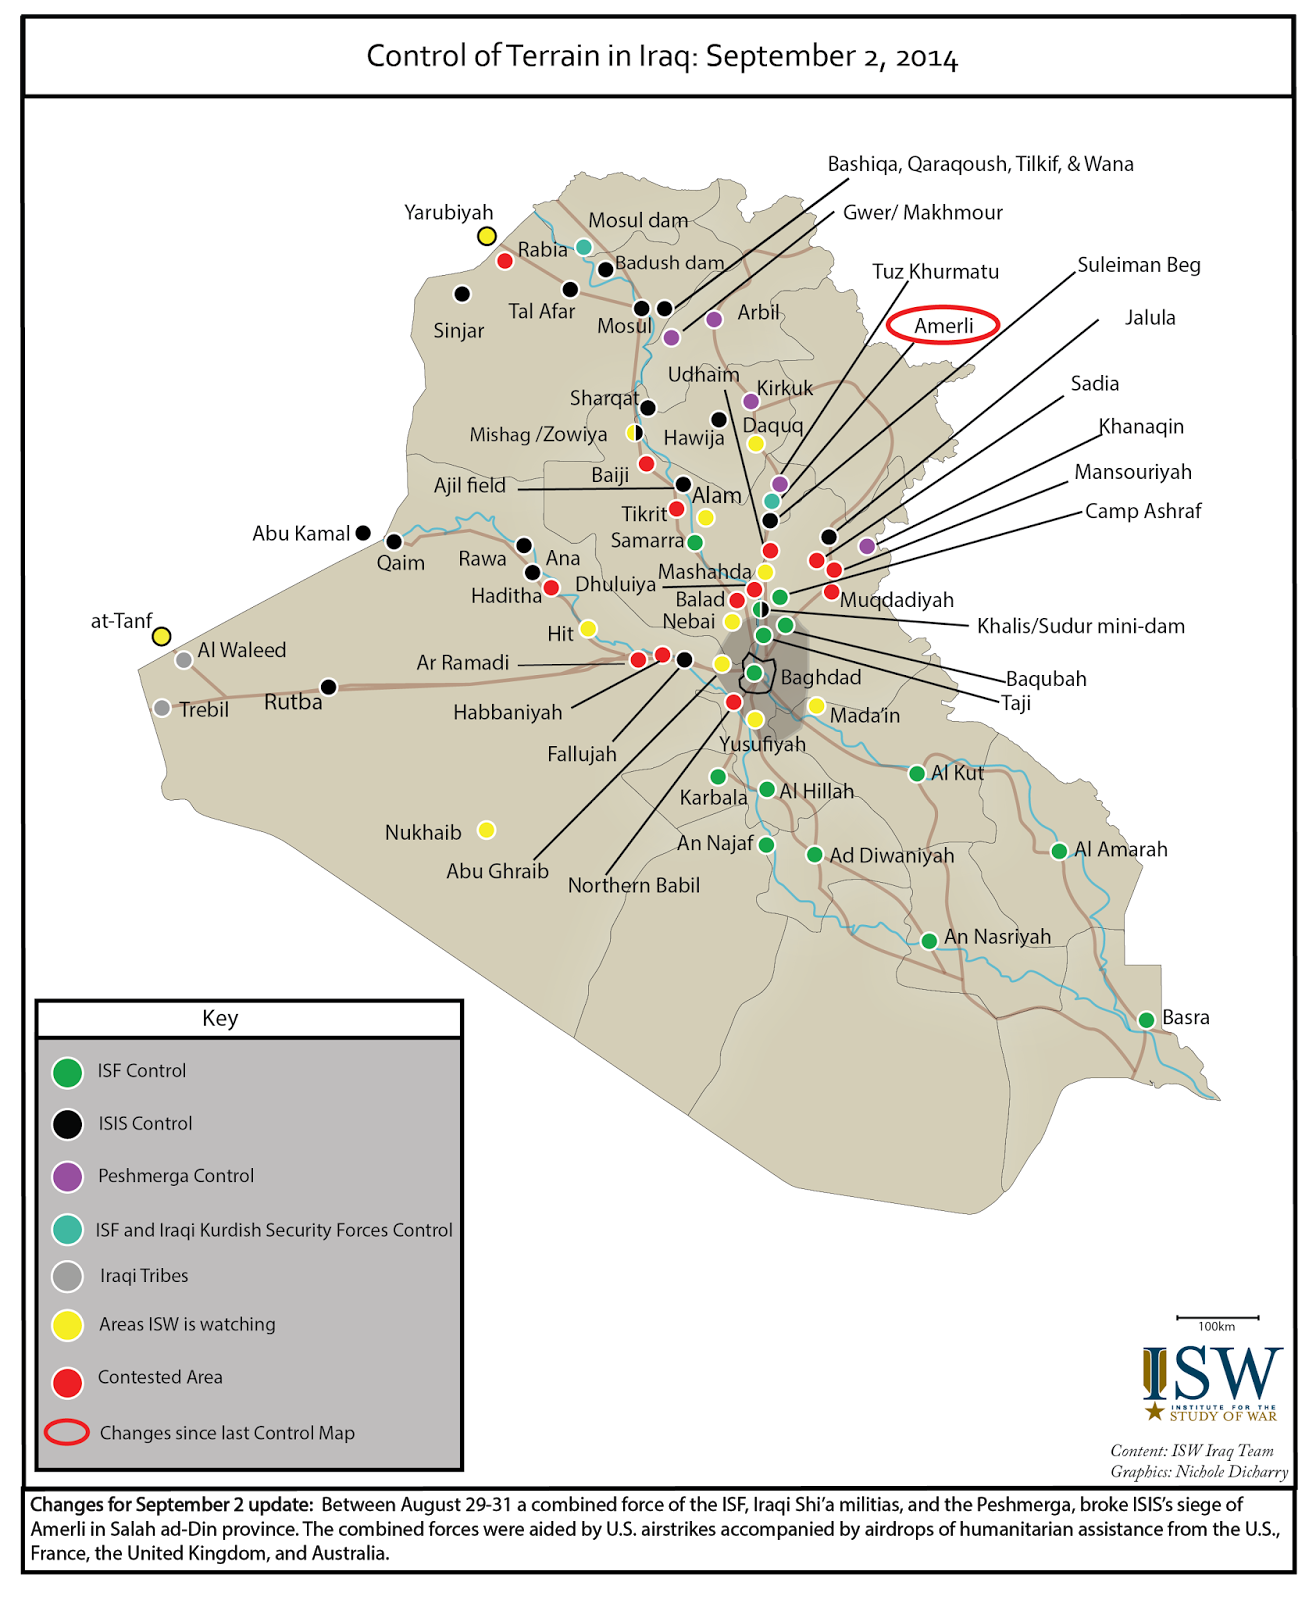 ISW Blog Control of Terrain in Iraq September 2 2014